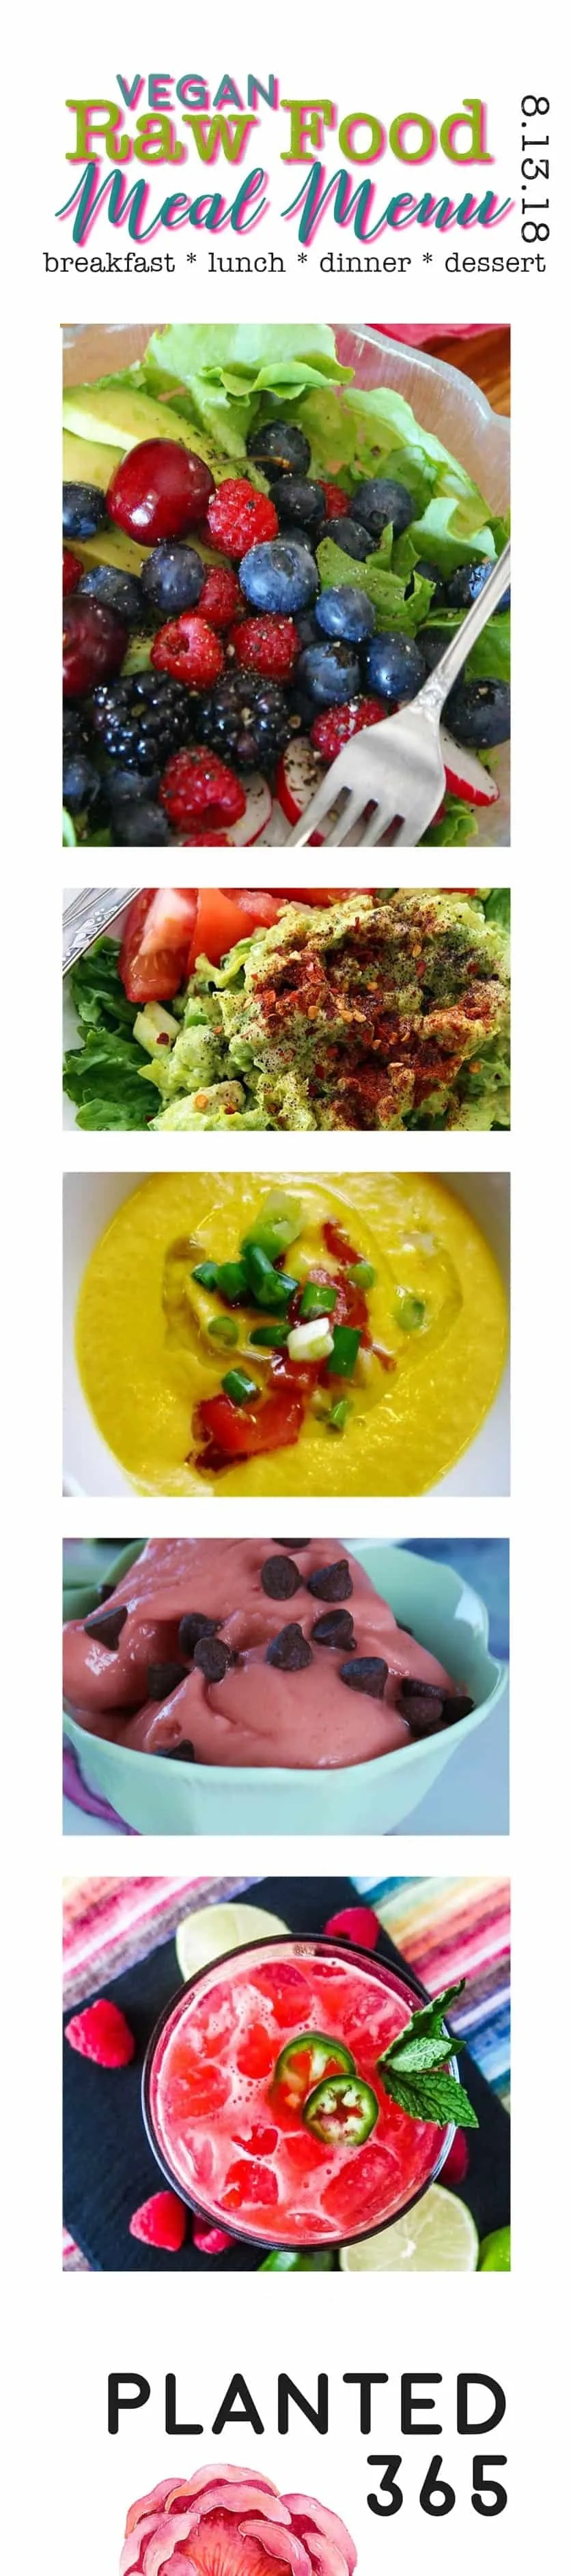 Vegan meal menu 8132018 raw food plant based recipes planted365 raw food meal menu 81318 raw vegan plant based recipes planted365 planted forumfinder Image collections